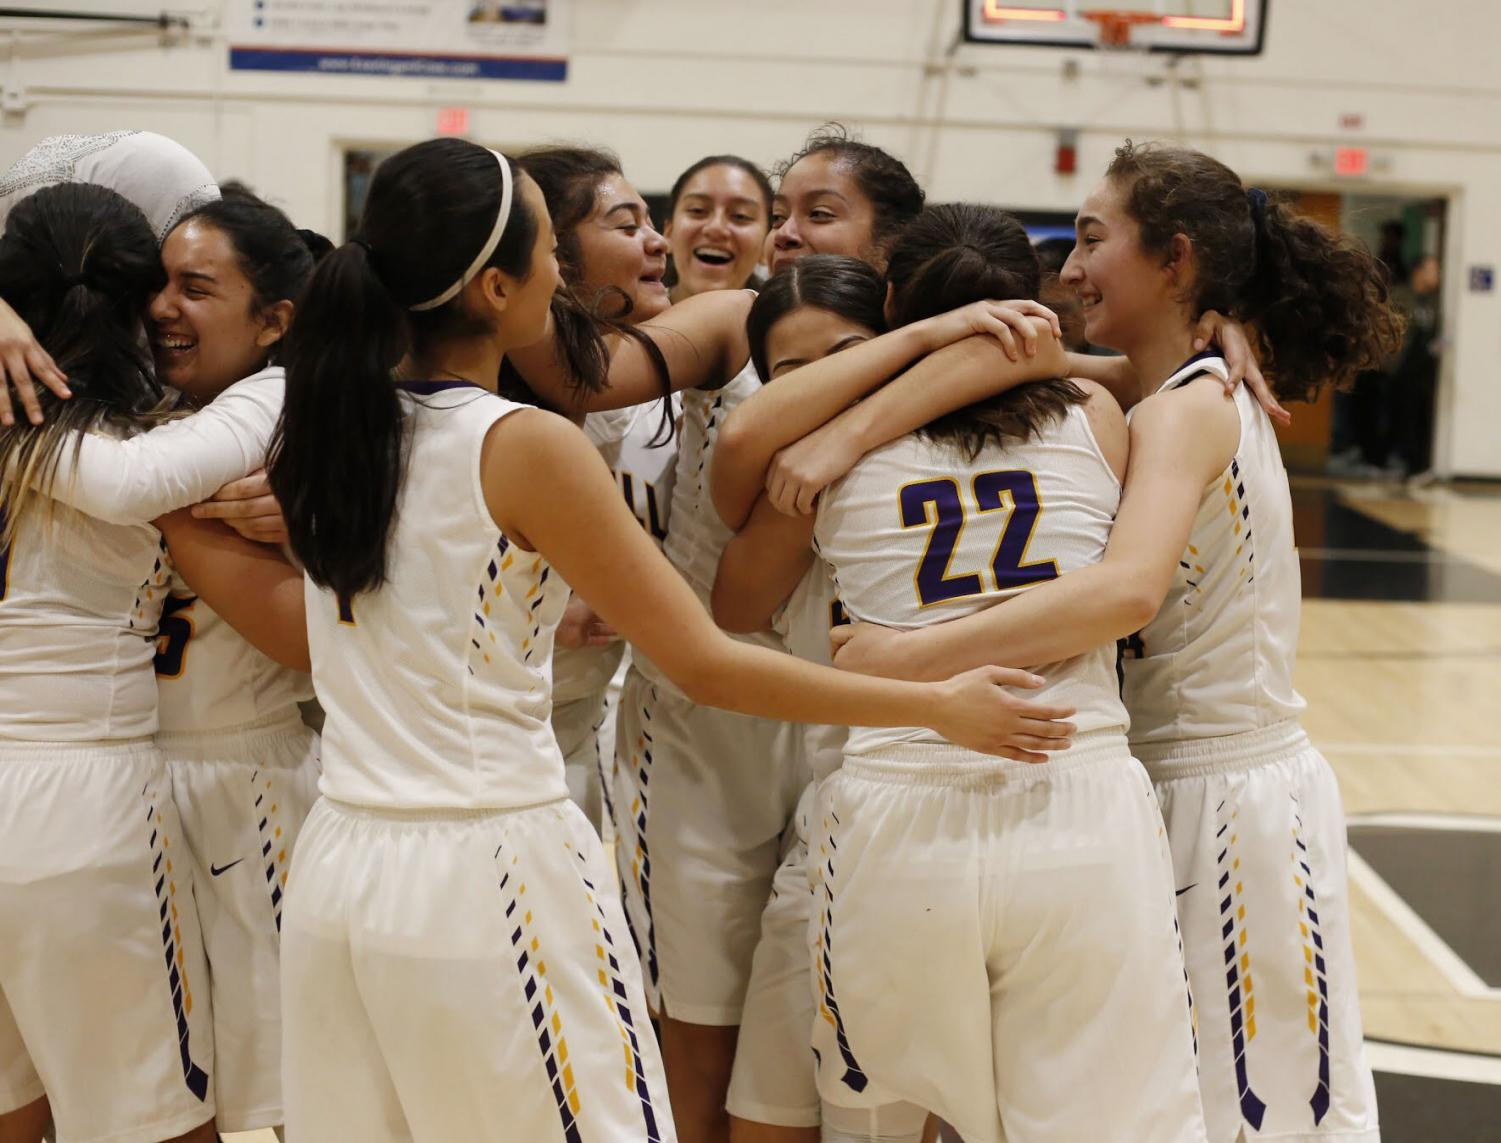 The+girls+hug+in+tight+embraces+because+they+had+just+made+history%21